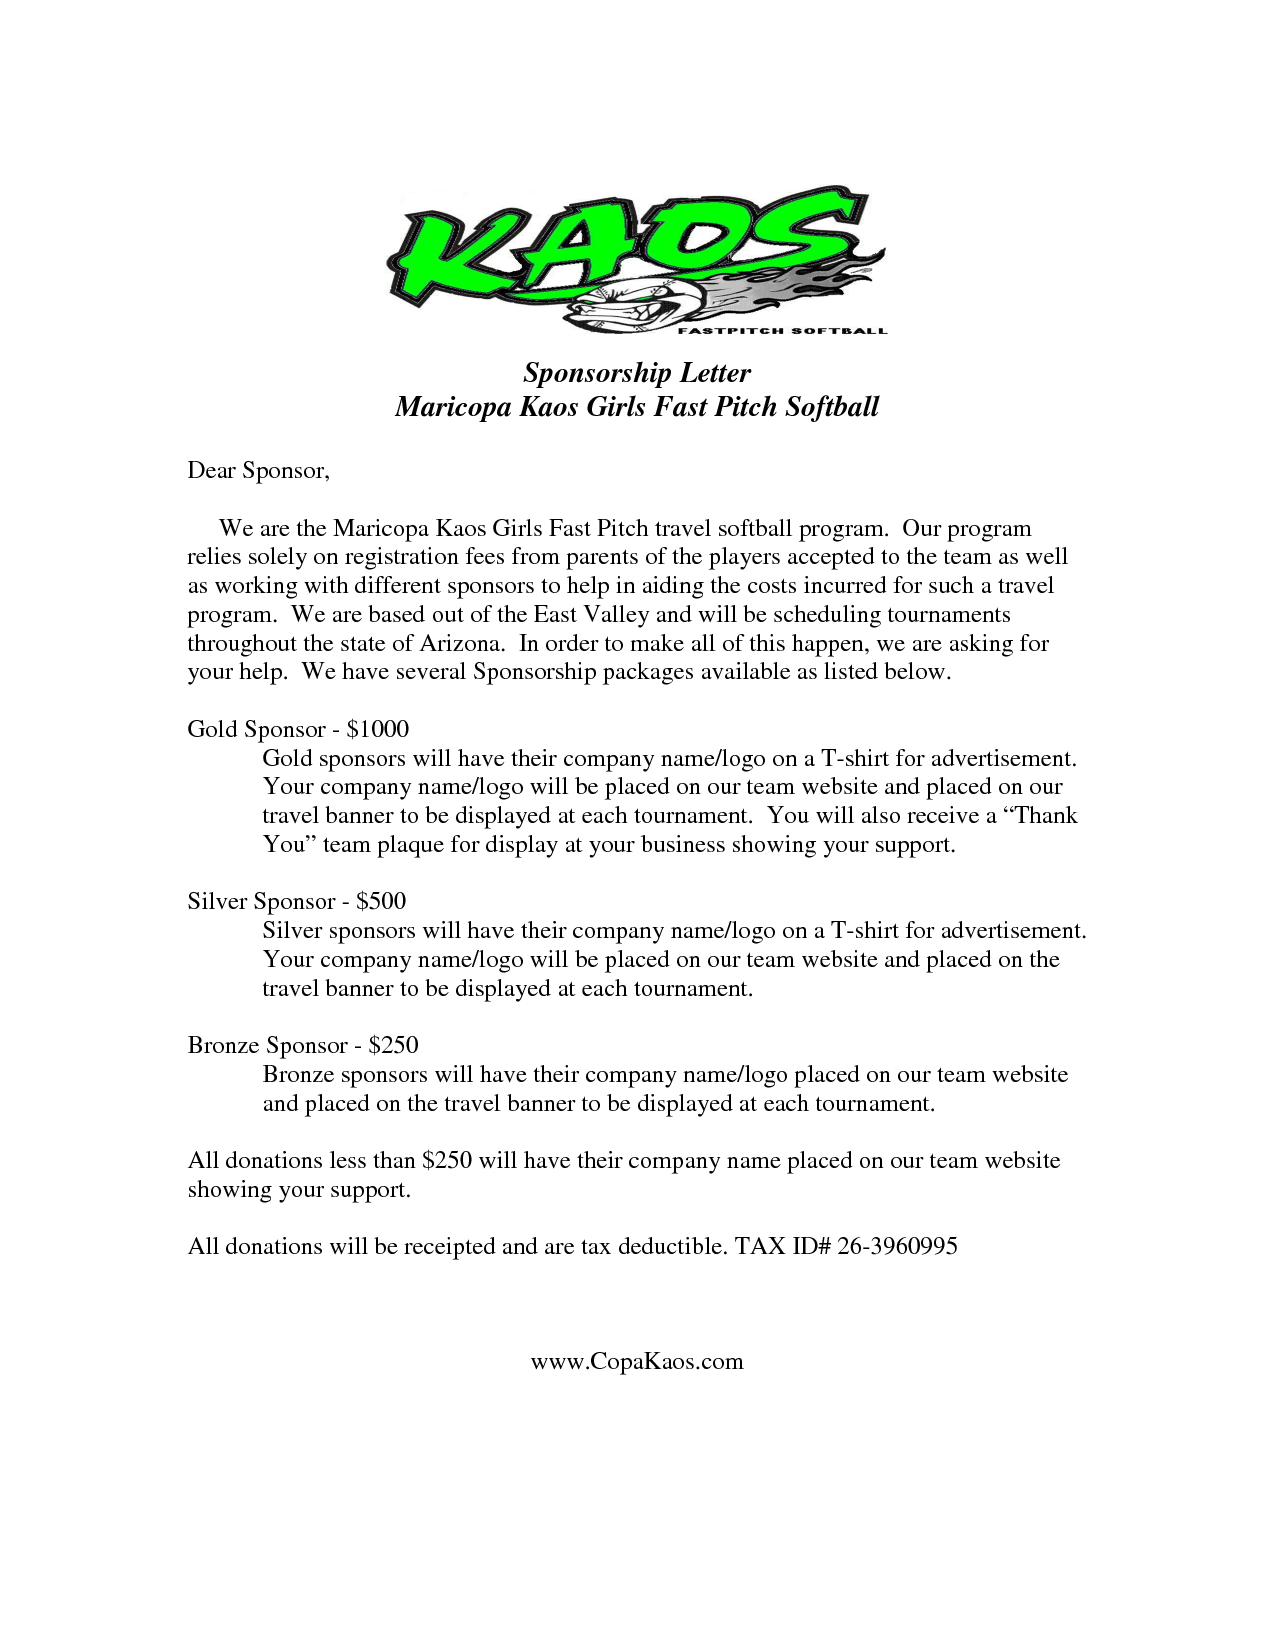 Fundraiser Request Letter Template - Image Result for Sample Sponsor Request Letter Donation